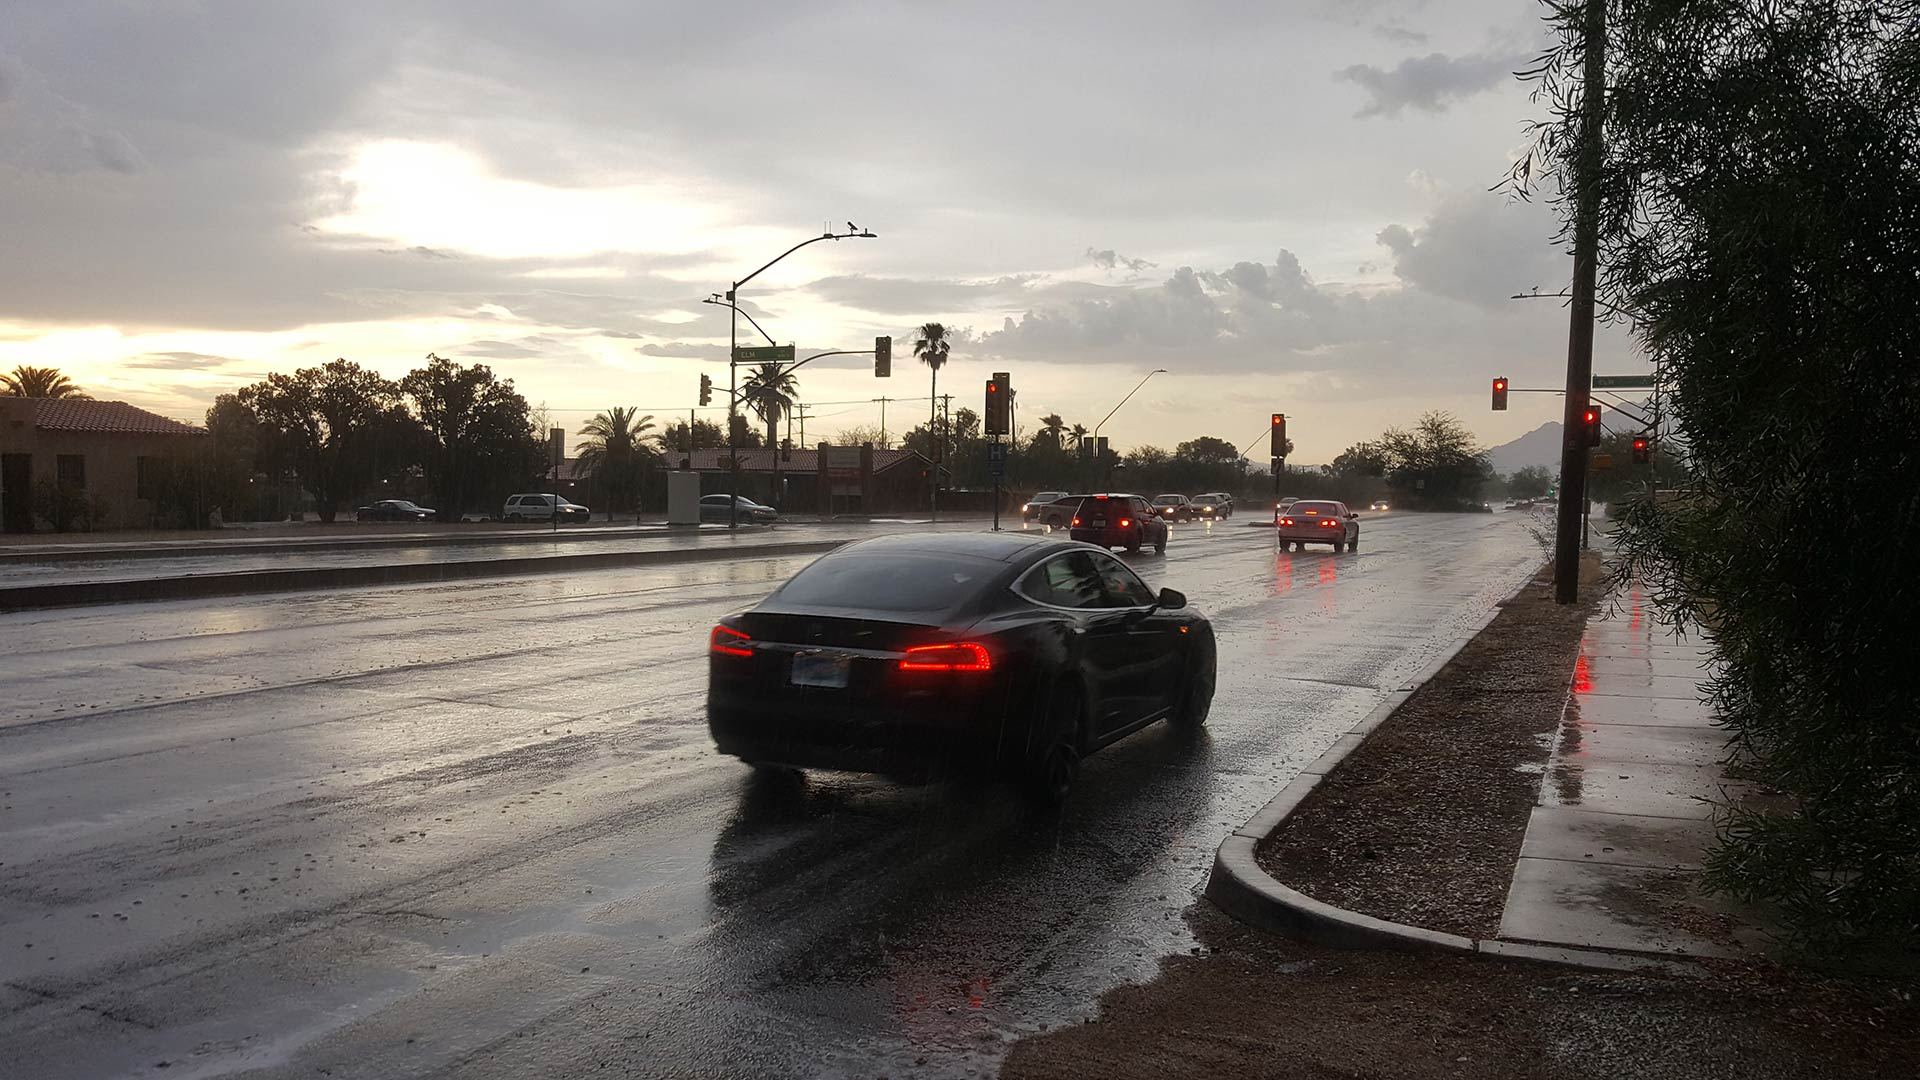 Cars drive down Campbell Avenue during a brief monsoon storm. From July 2017.